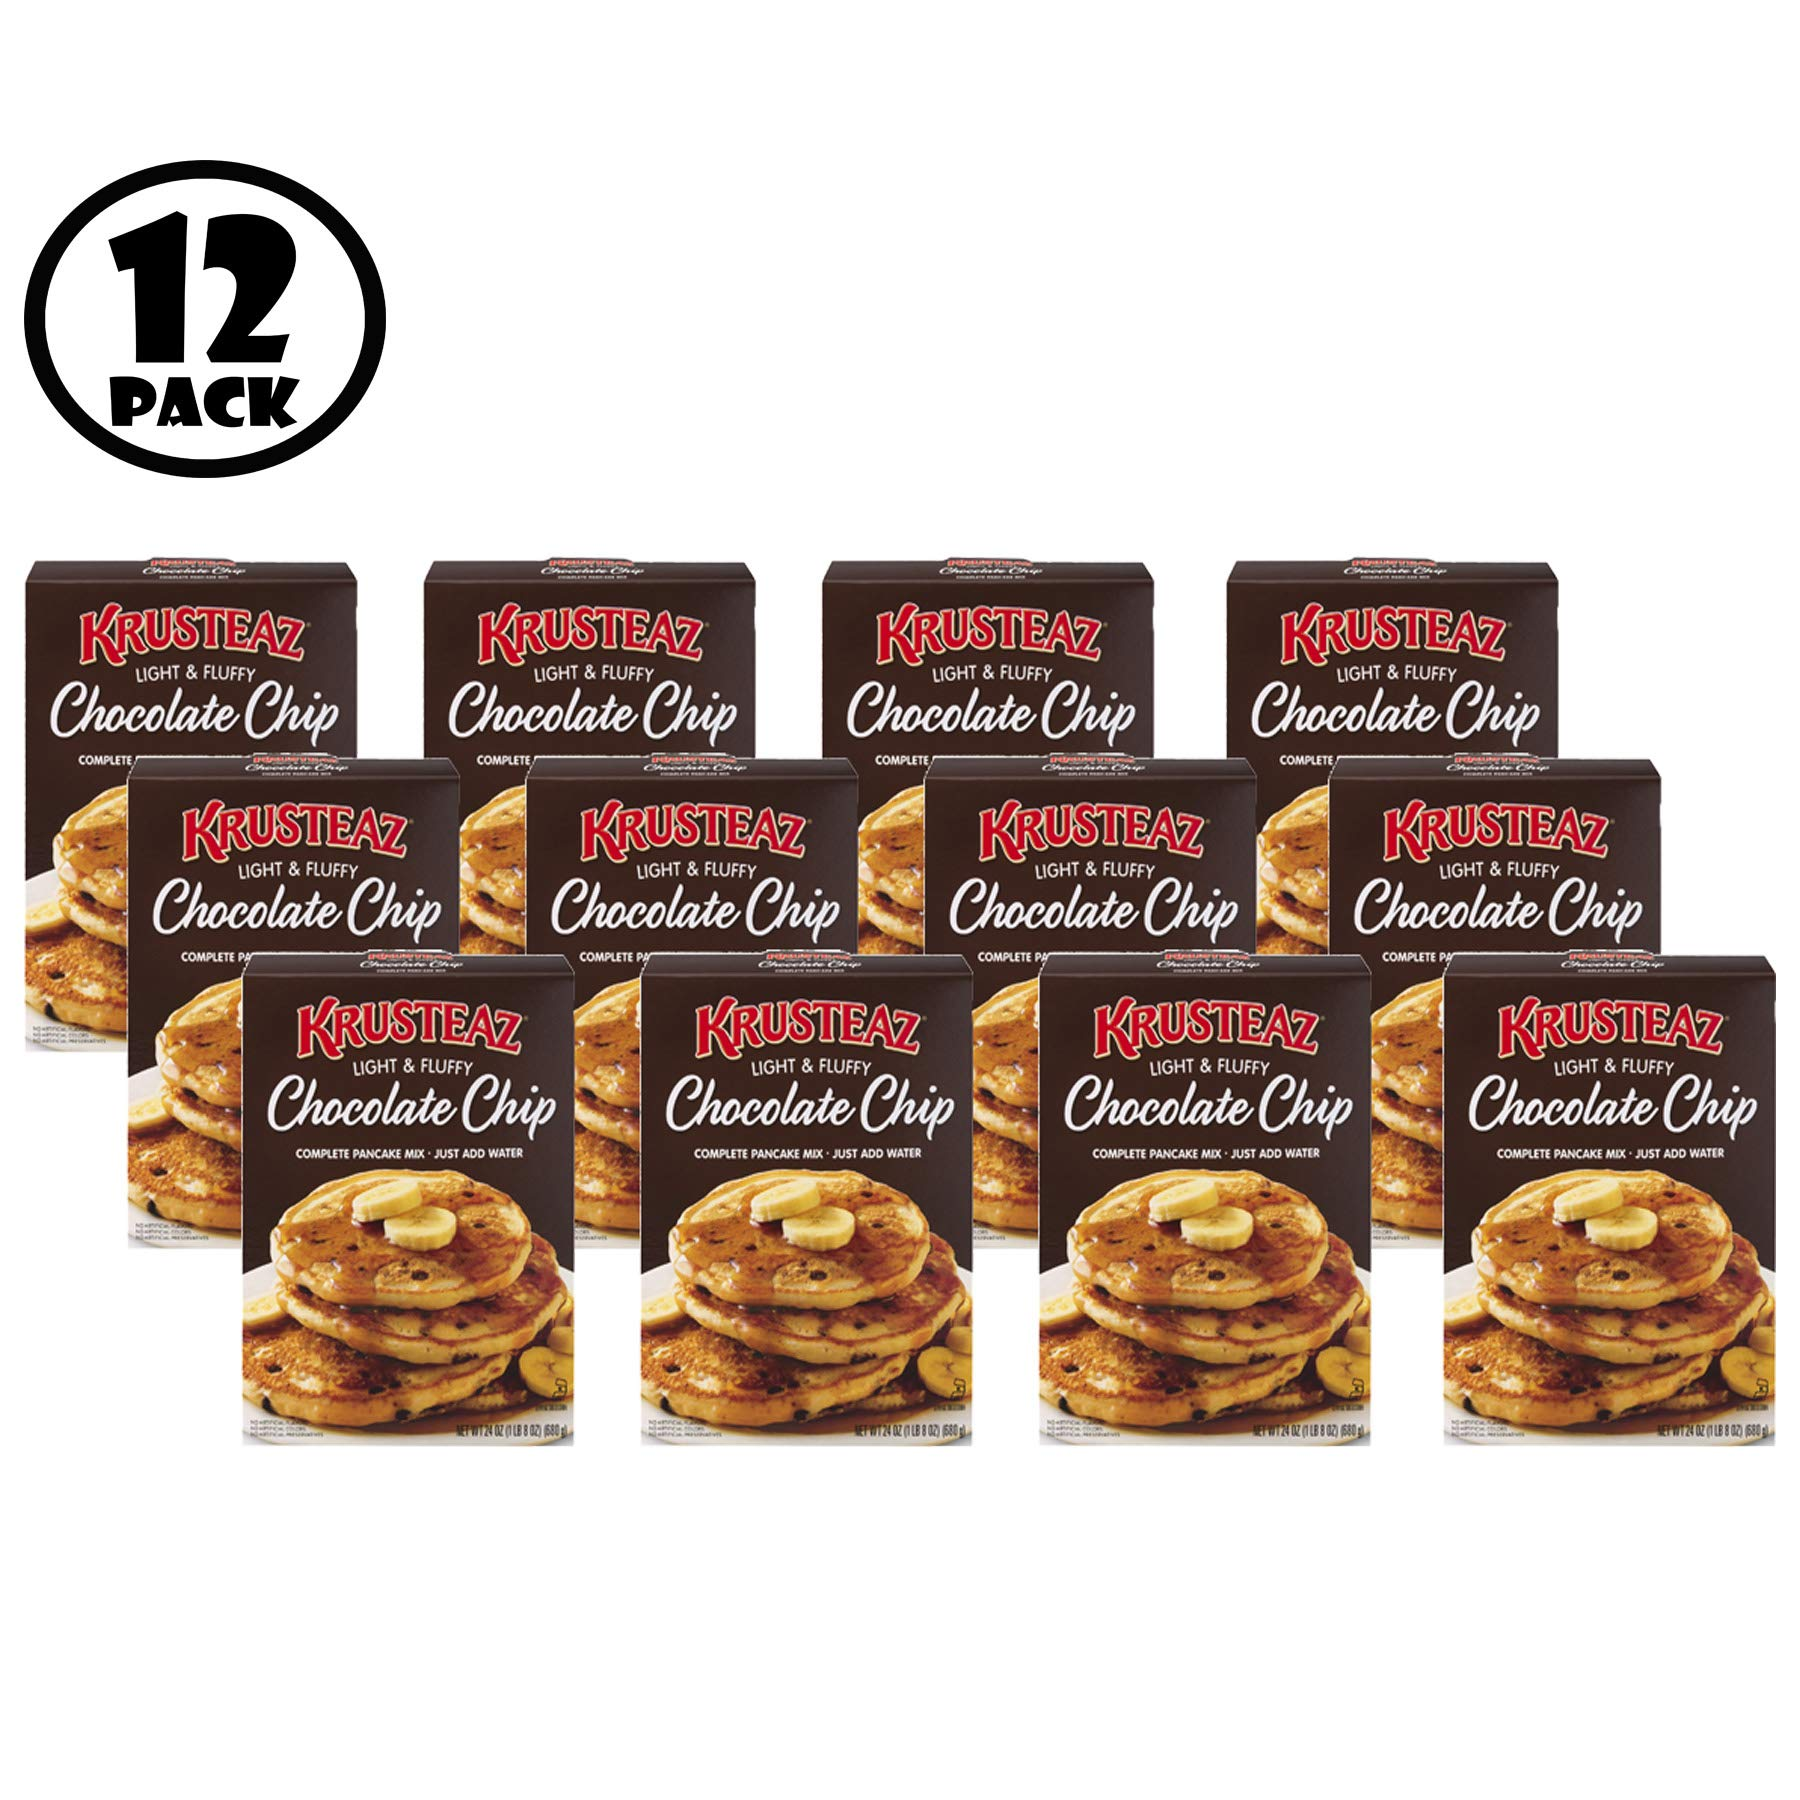 (Pack of 12) Krusteaz Chocolate Chip Complete Pancake Mix 24 oz. Box